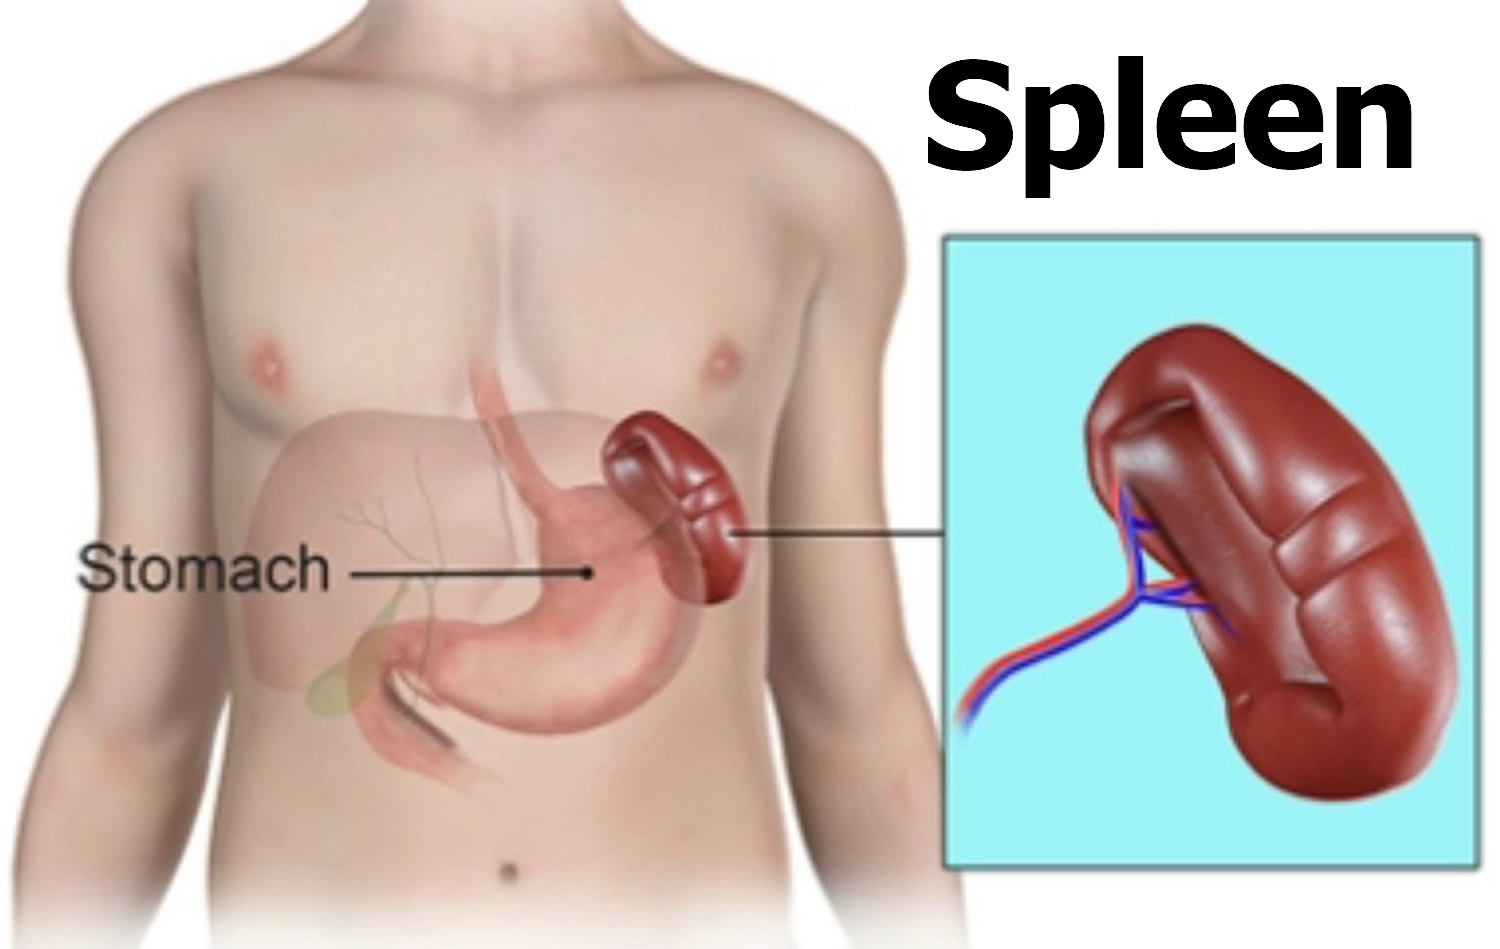 Spleen Location Function Symptoms Of Enlarged Ruptured Spleen